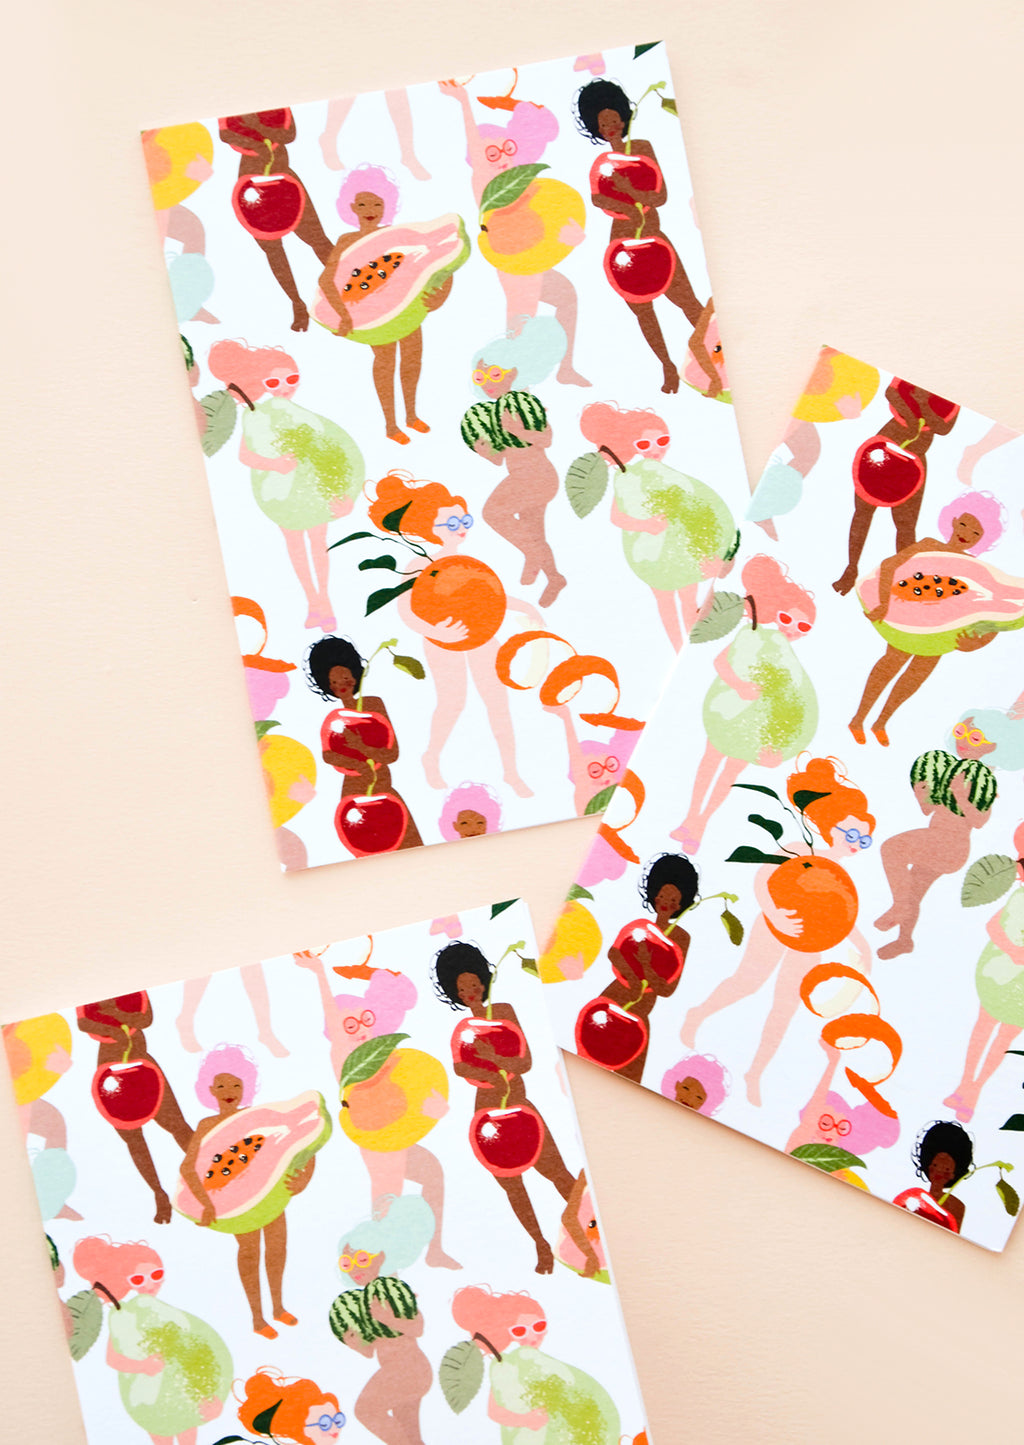 3: Set of cards featuring illustrated people of all skin colors, covering themselves with fruit.